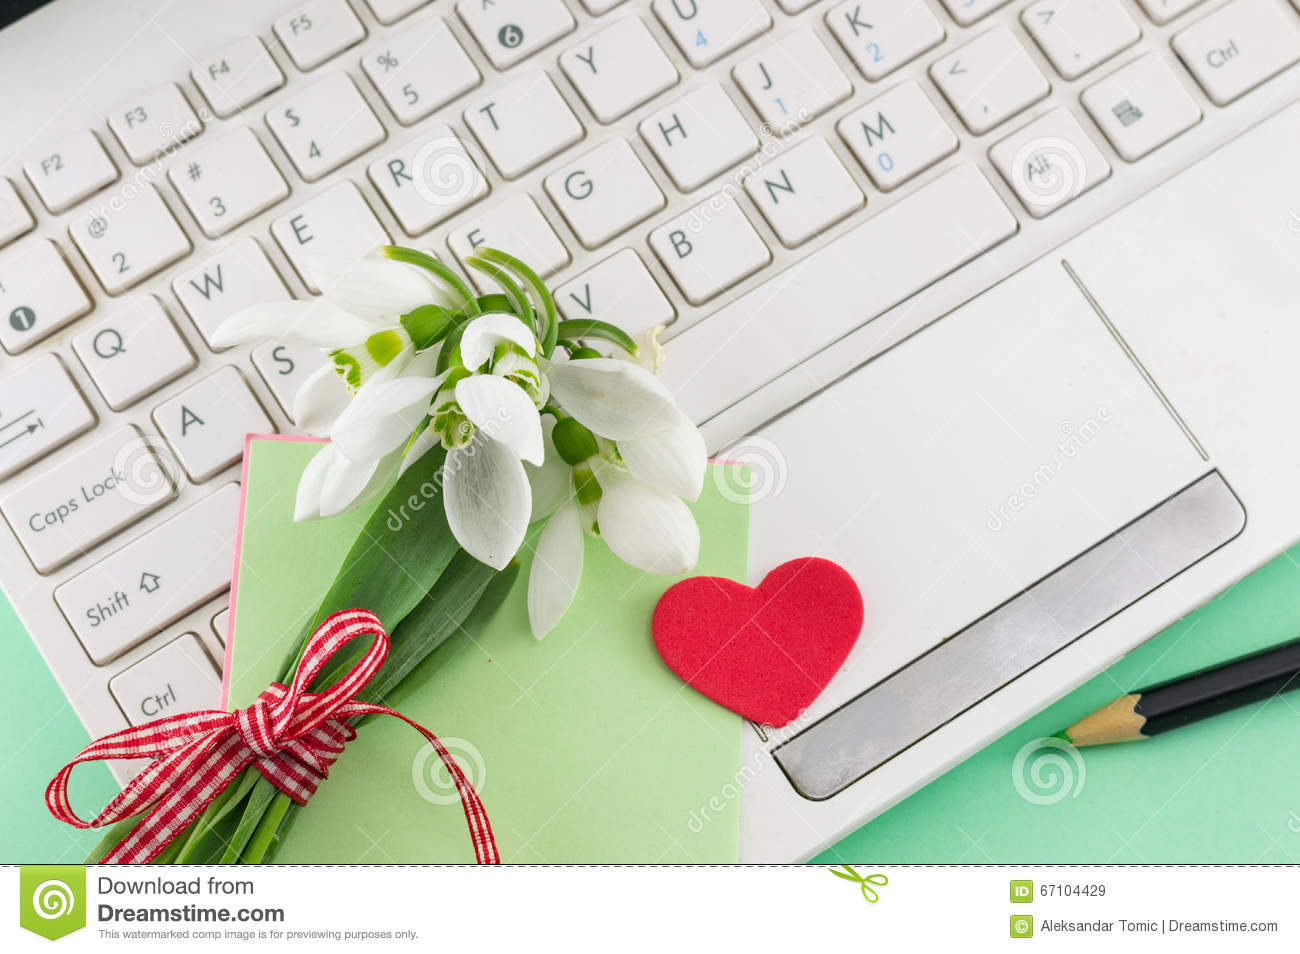 Romantic snowdrops bouquet and a laptop